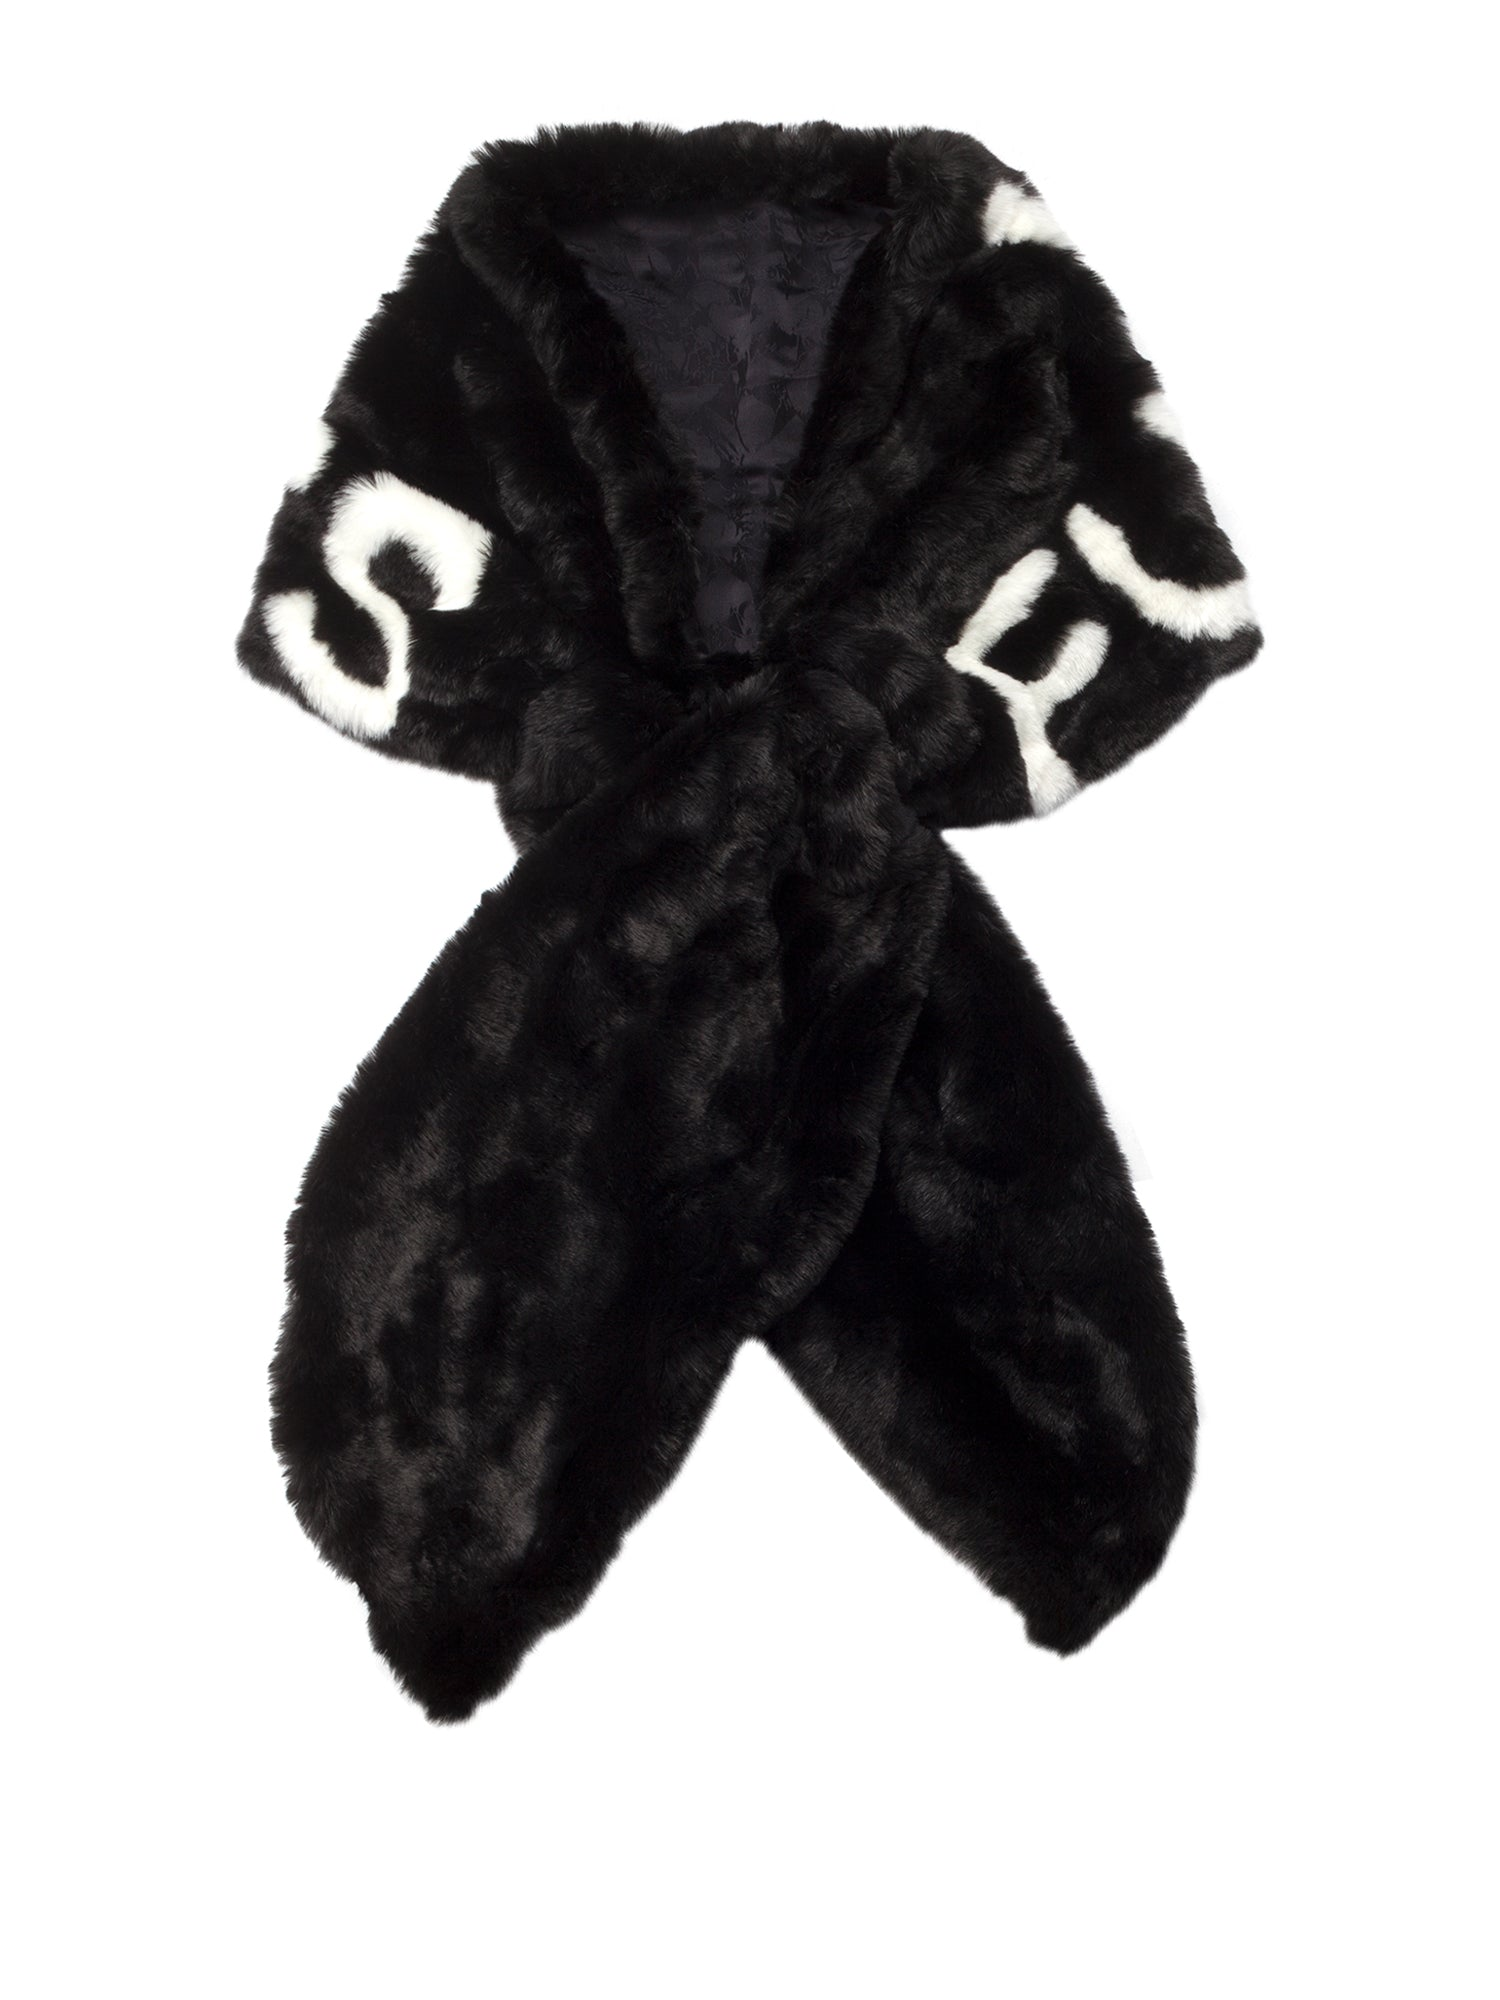 A Packshot Of Marei1998's Furless Faux Fur Stole In Off White Color. Exclusively Designed As Part Of Marei1998's Furless Label, This Stole Is A Bold Statement Piece. Cut In A Wide Silhouette, It Is Crafted From Plush Faux Fur In Black Color, Featuring White Jacquard Design. Front View.